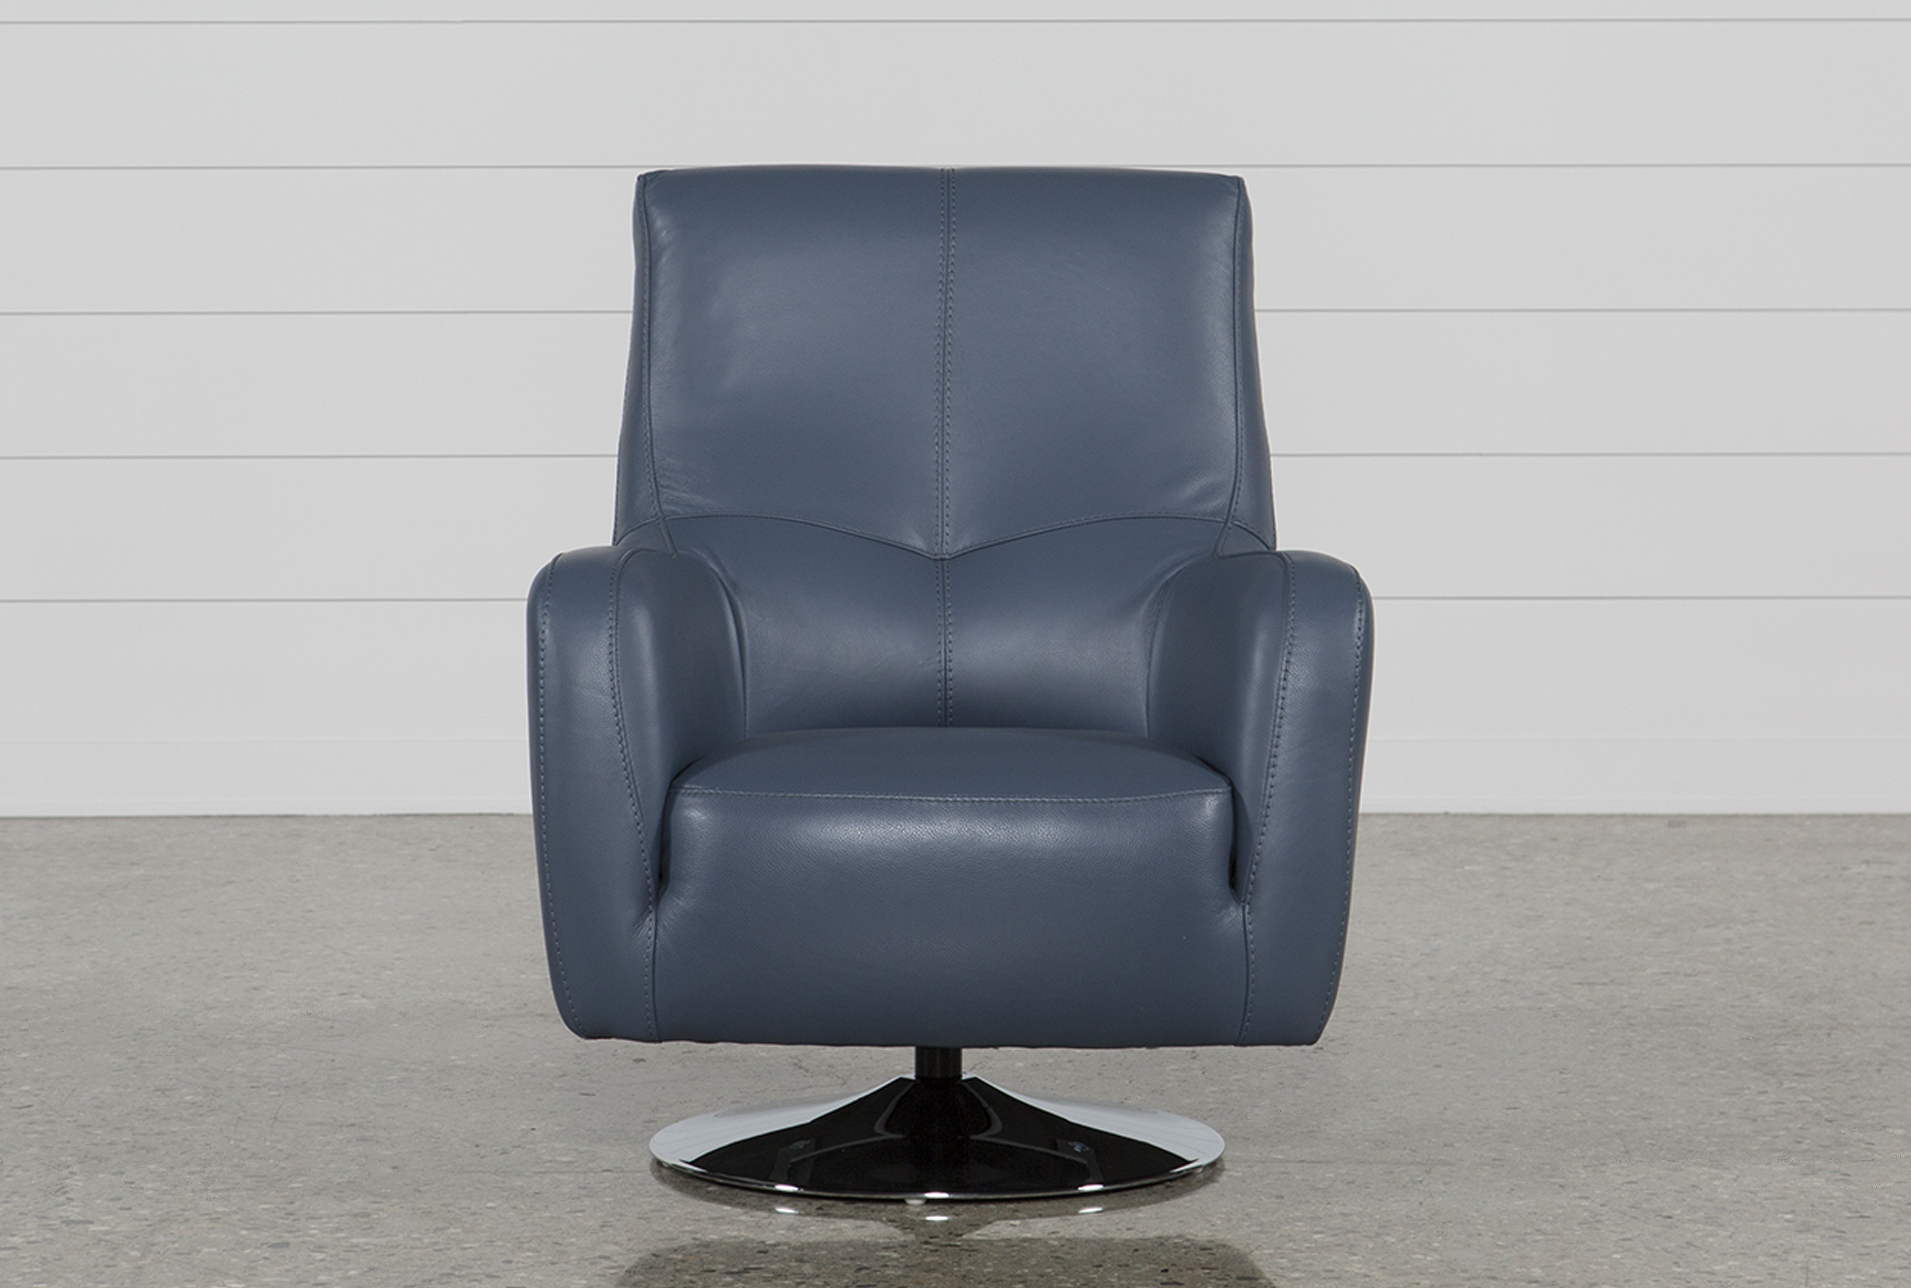 Kawai Leather Swivel Chair | Products | Pinterest | Leather Swivel Inside Amala White Leather Reclining Swivel Chairs (Image 15 of 20)